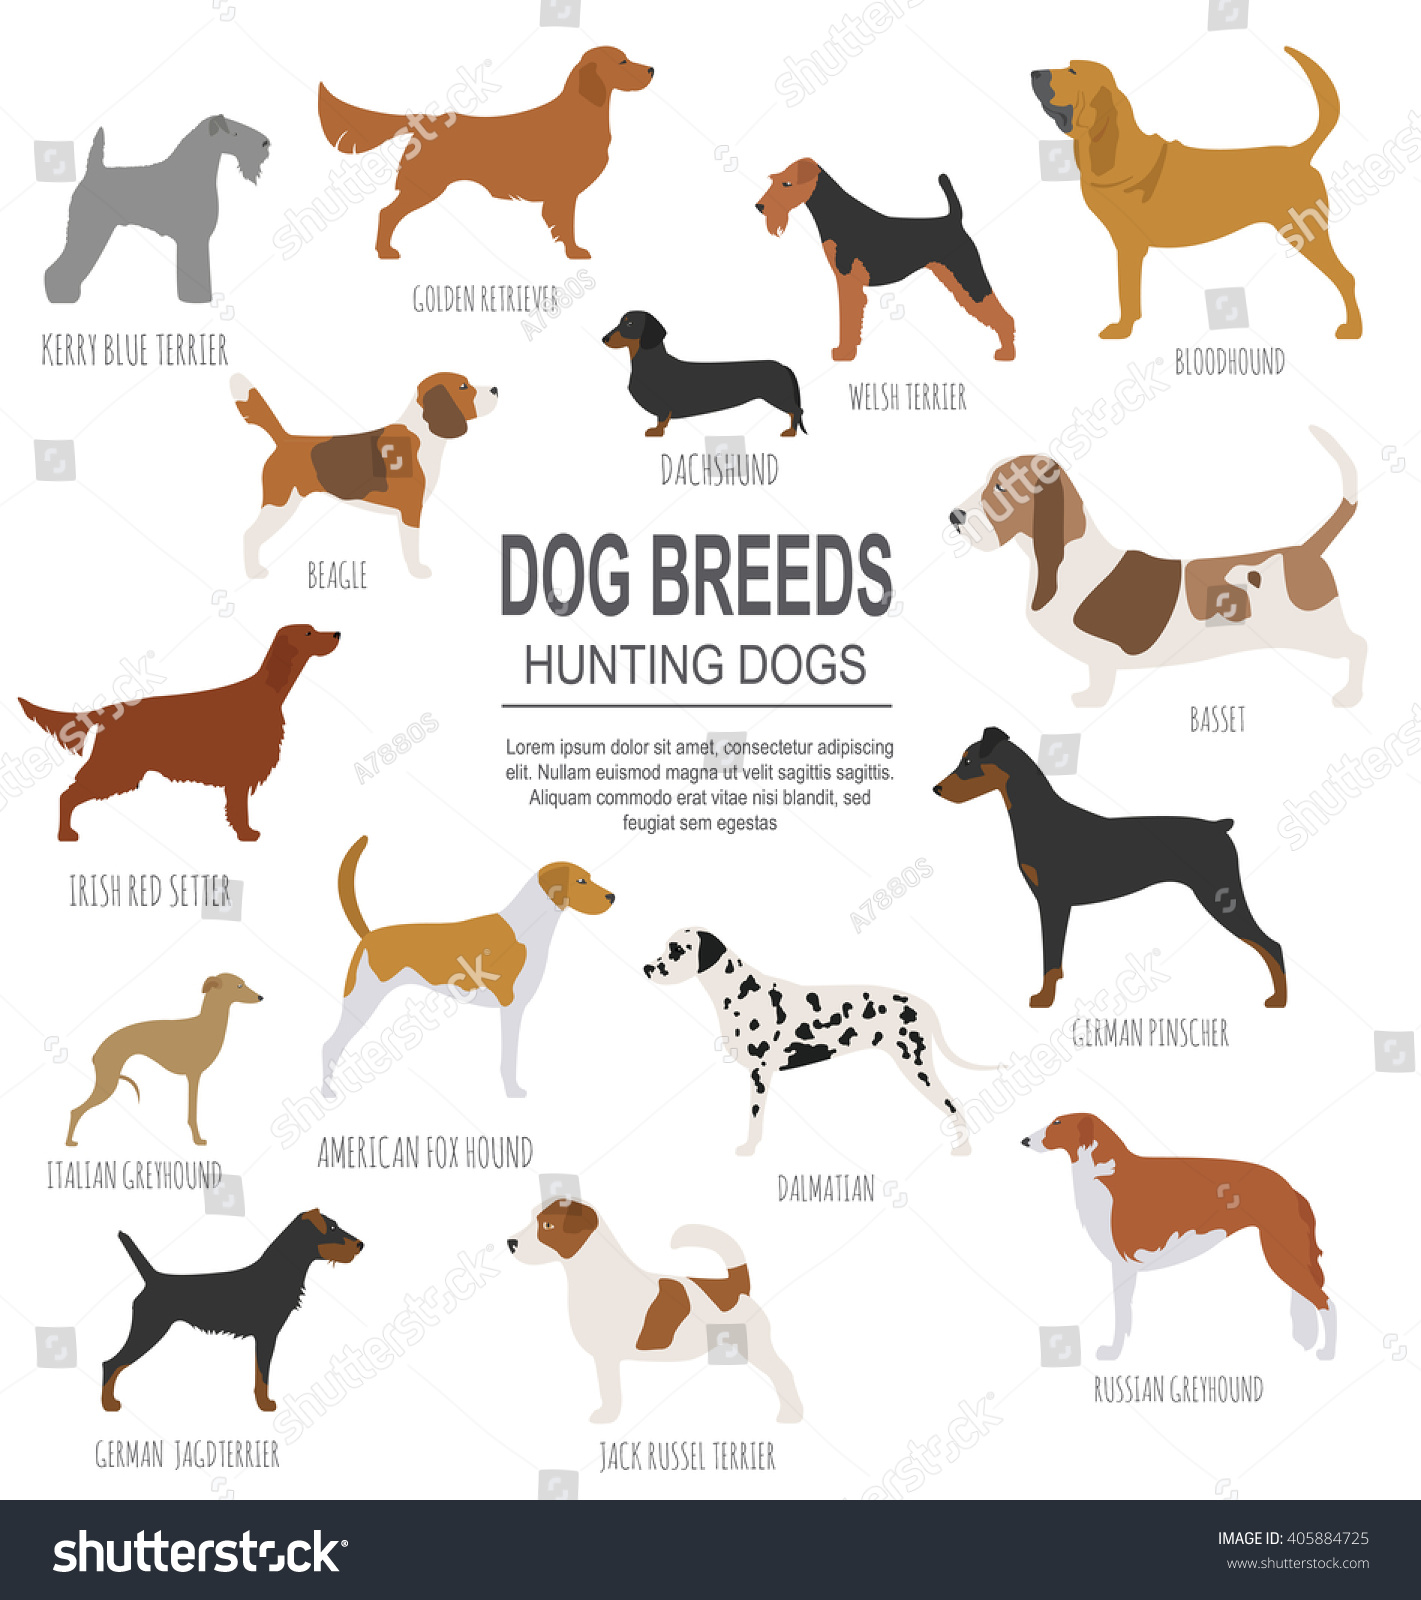 Hunting Tracking Dog Breeds